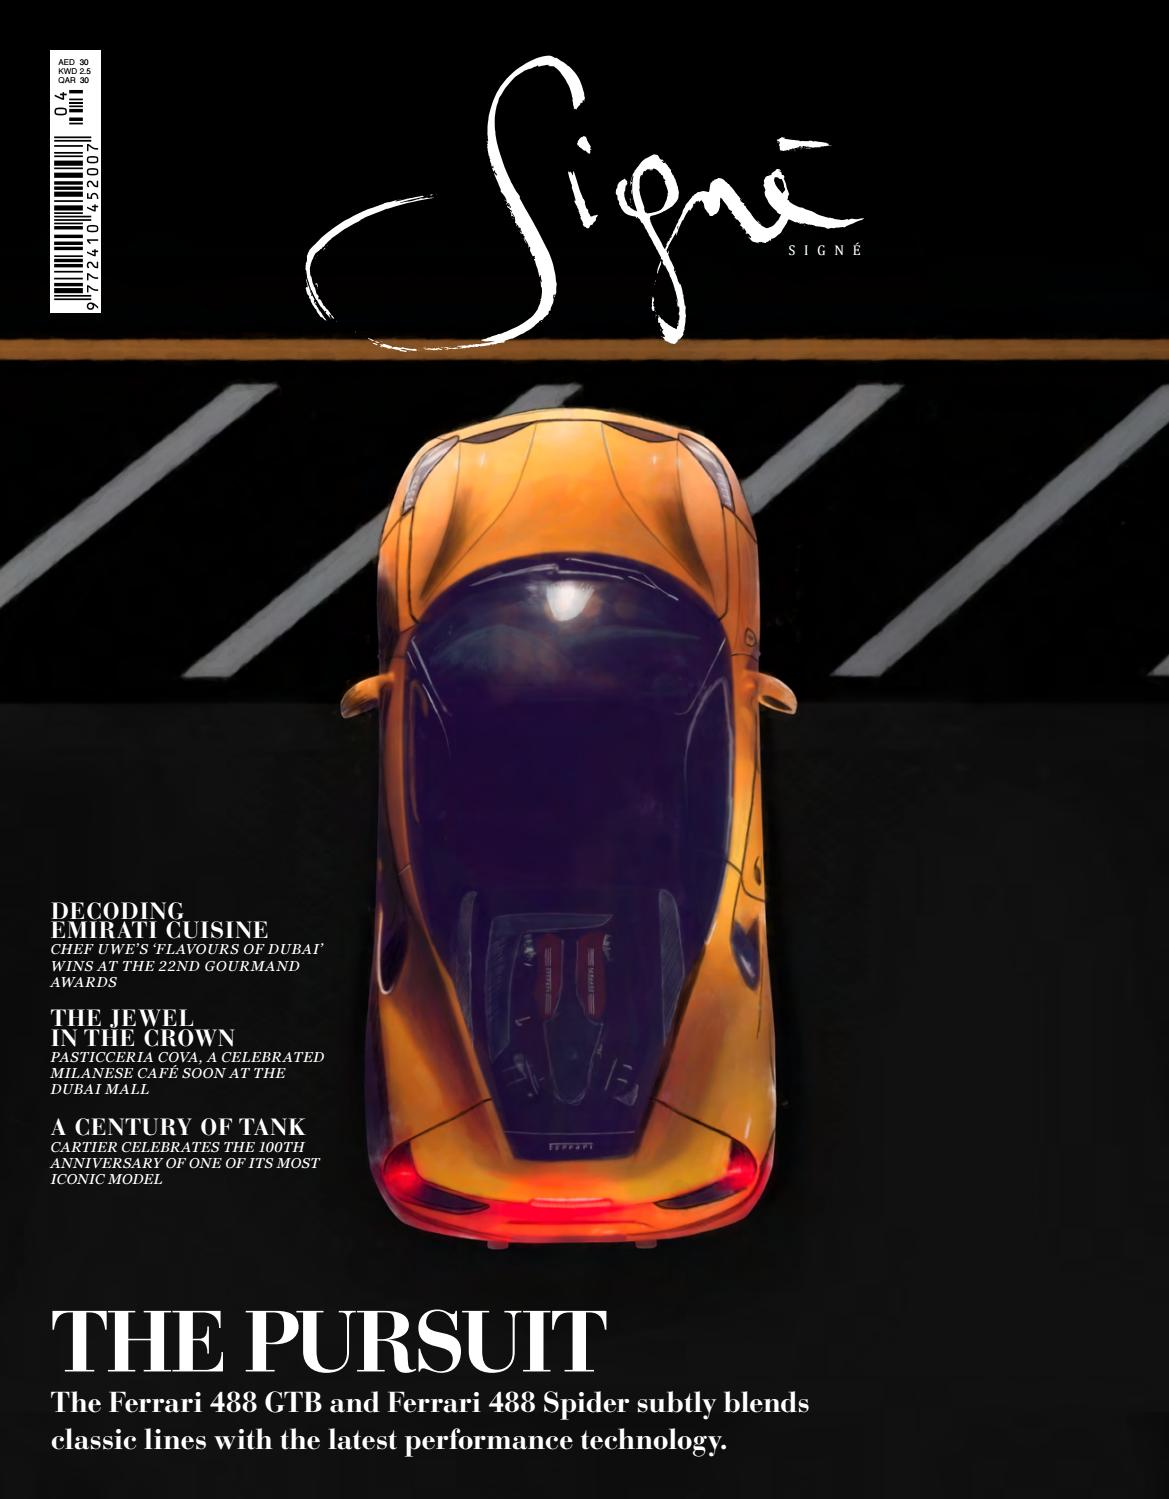 77ec75d1a2c Signe 27 Sep Oct 2017 by Signé - issuu